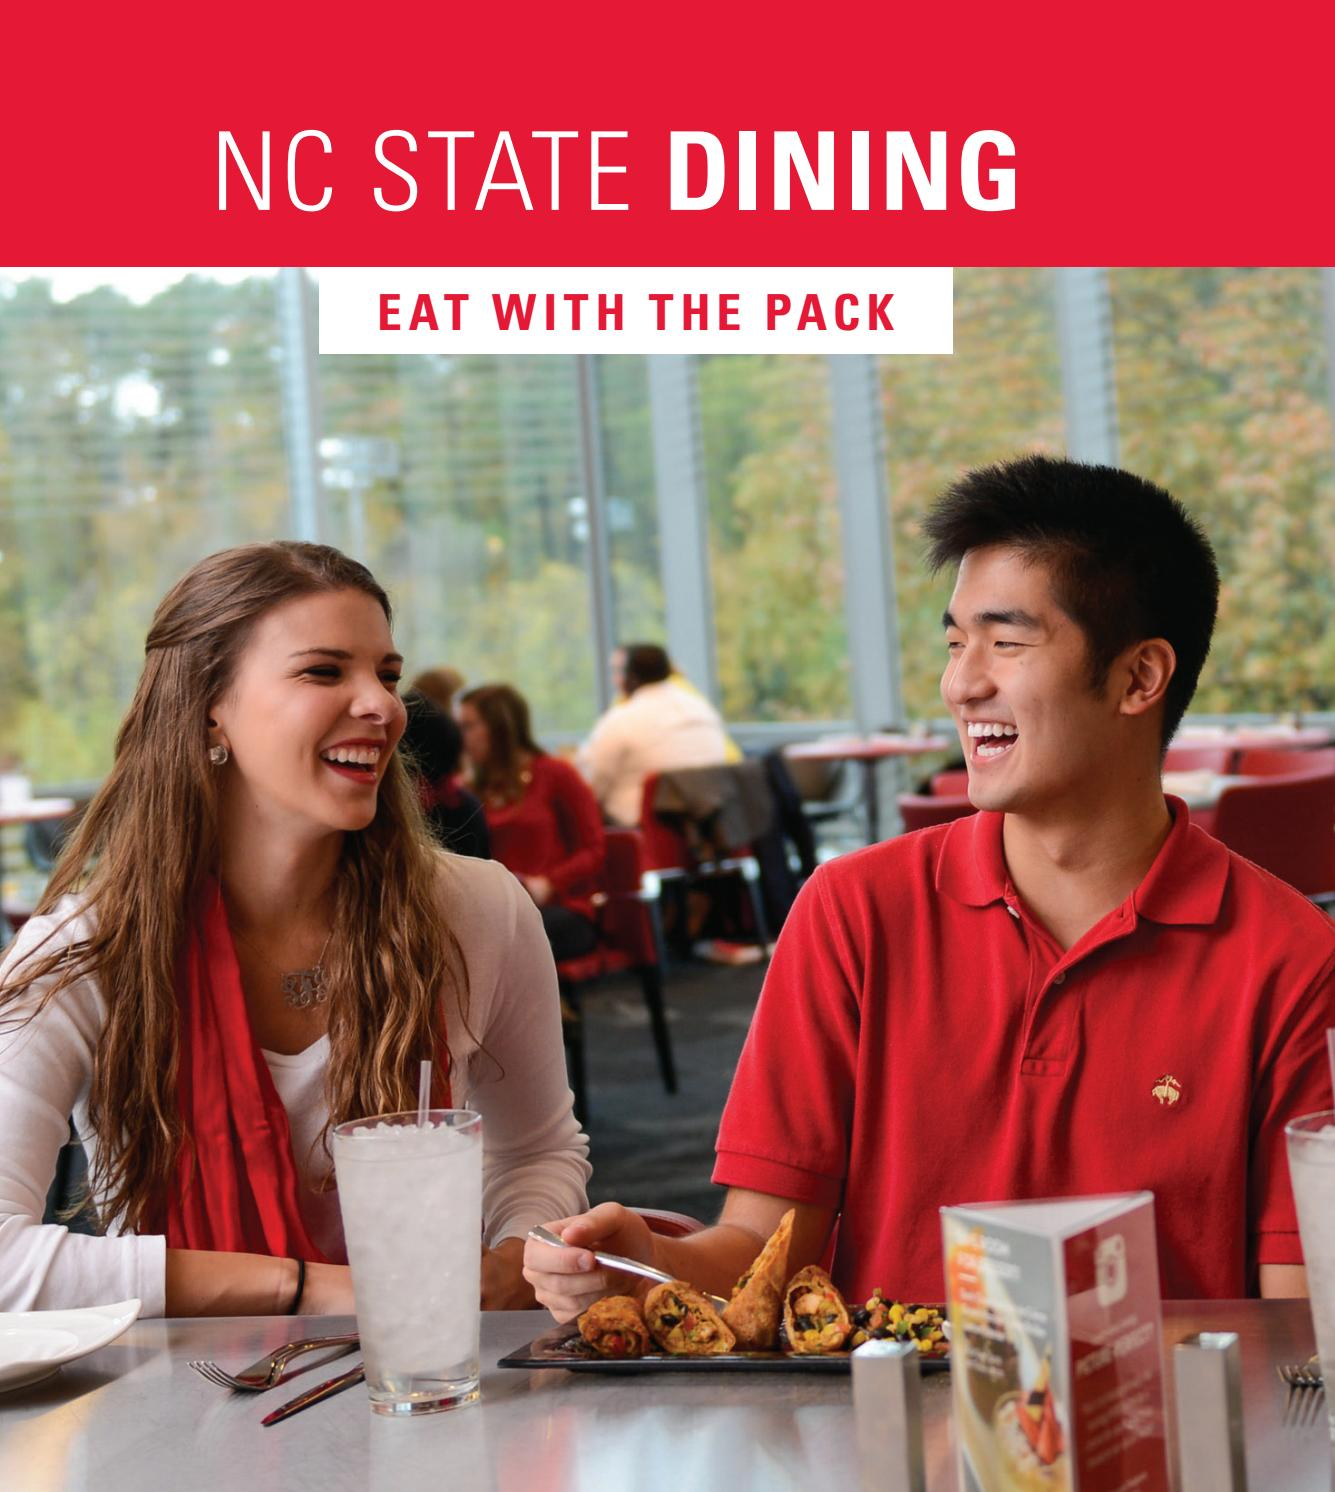 2016 2017 Meal Plan Guide by Campus Enterprises NC State issuu